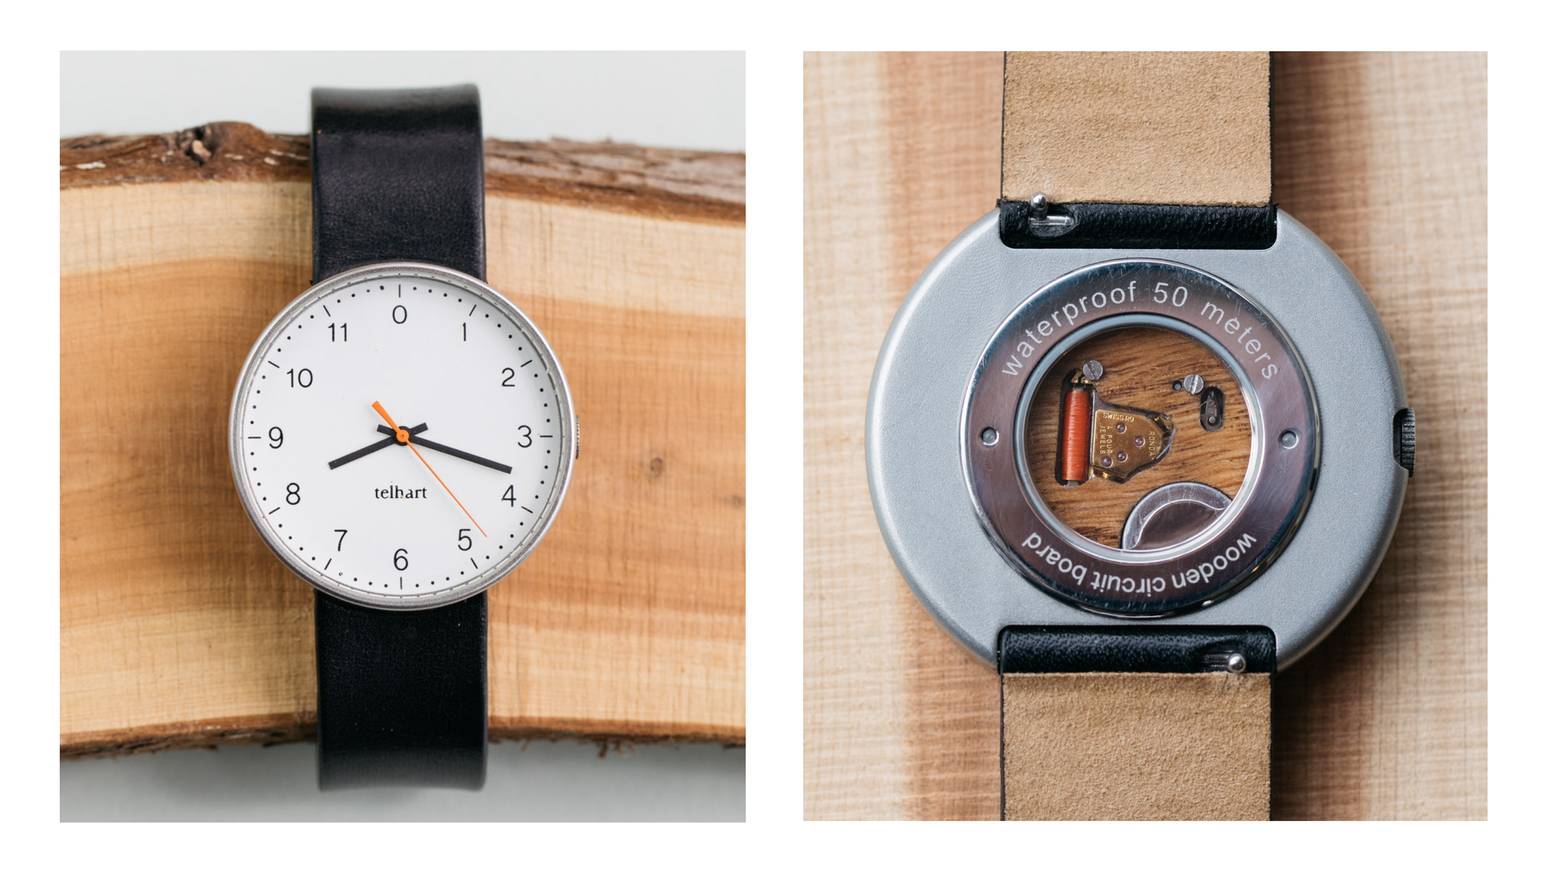 The Watch With Worlds First Wooden Circuit Board By Telhart Boards Like Magic Appears